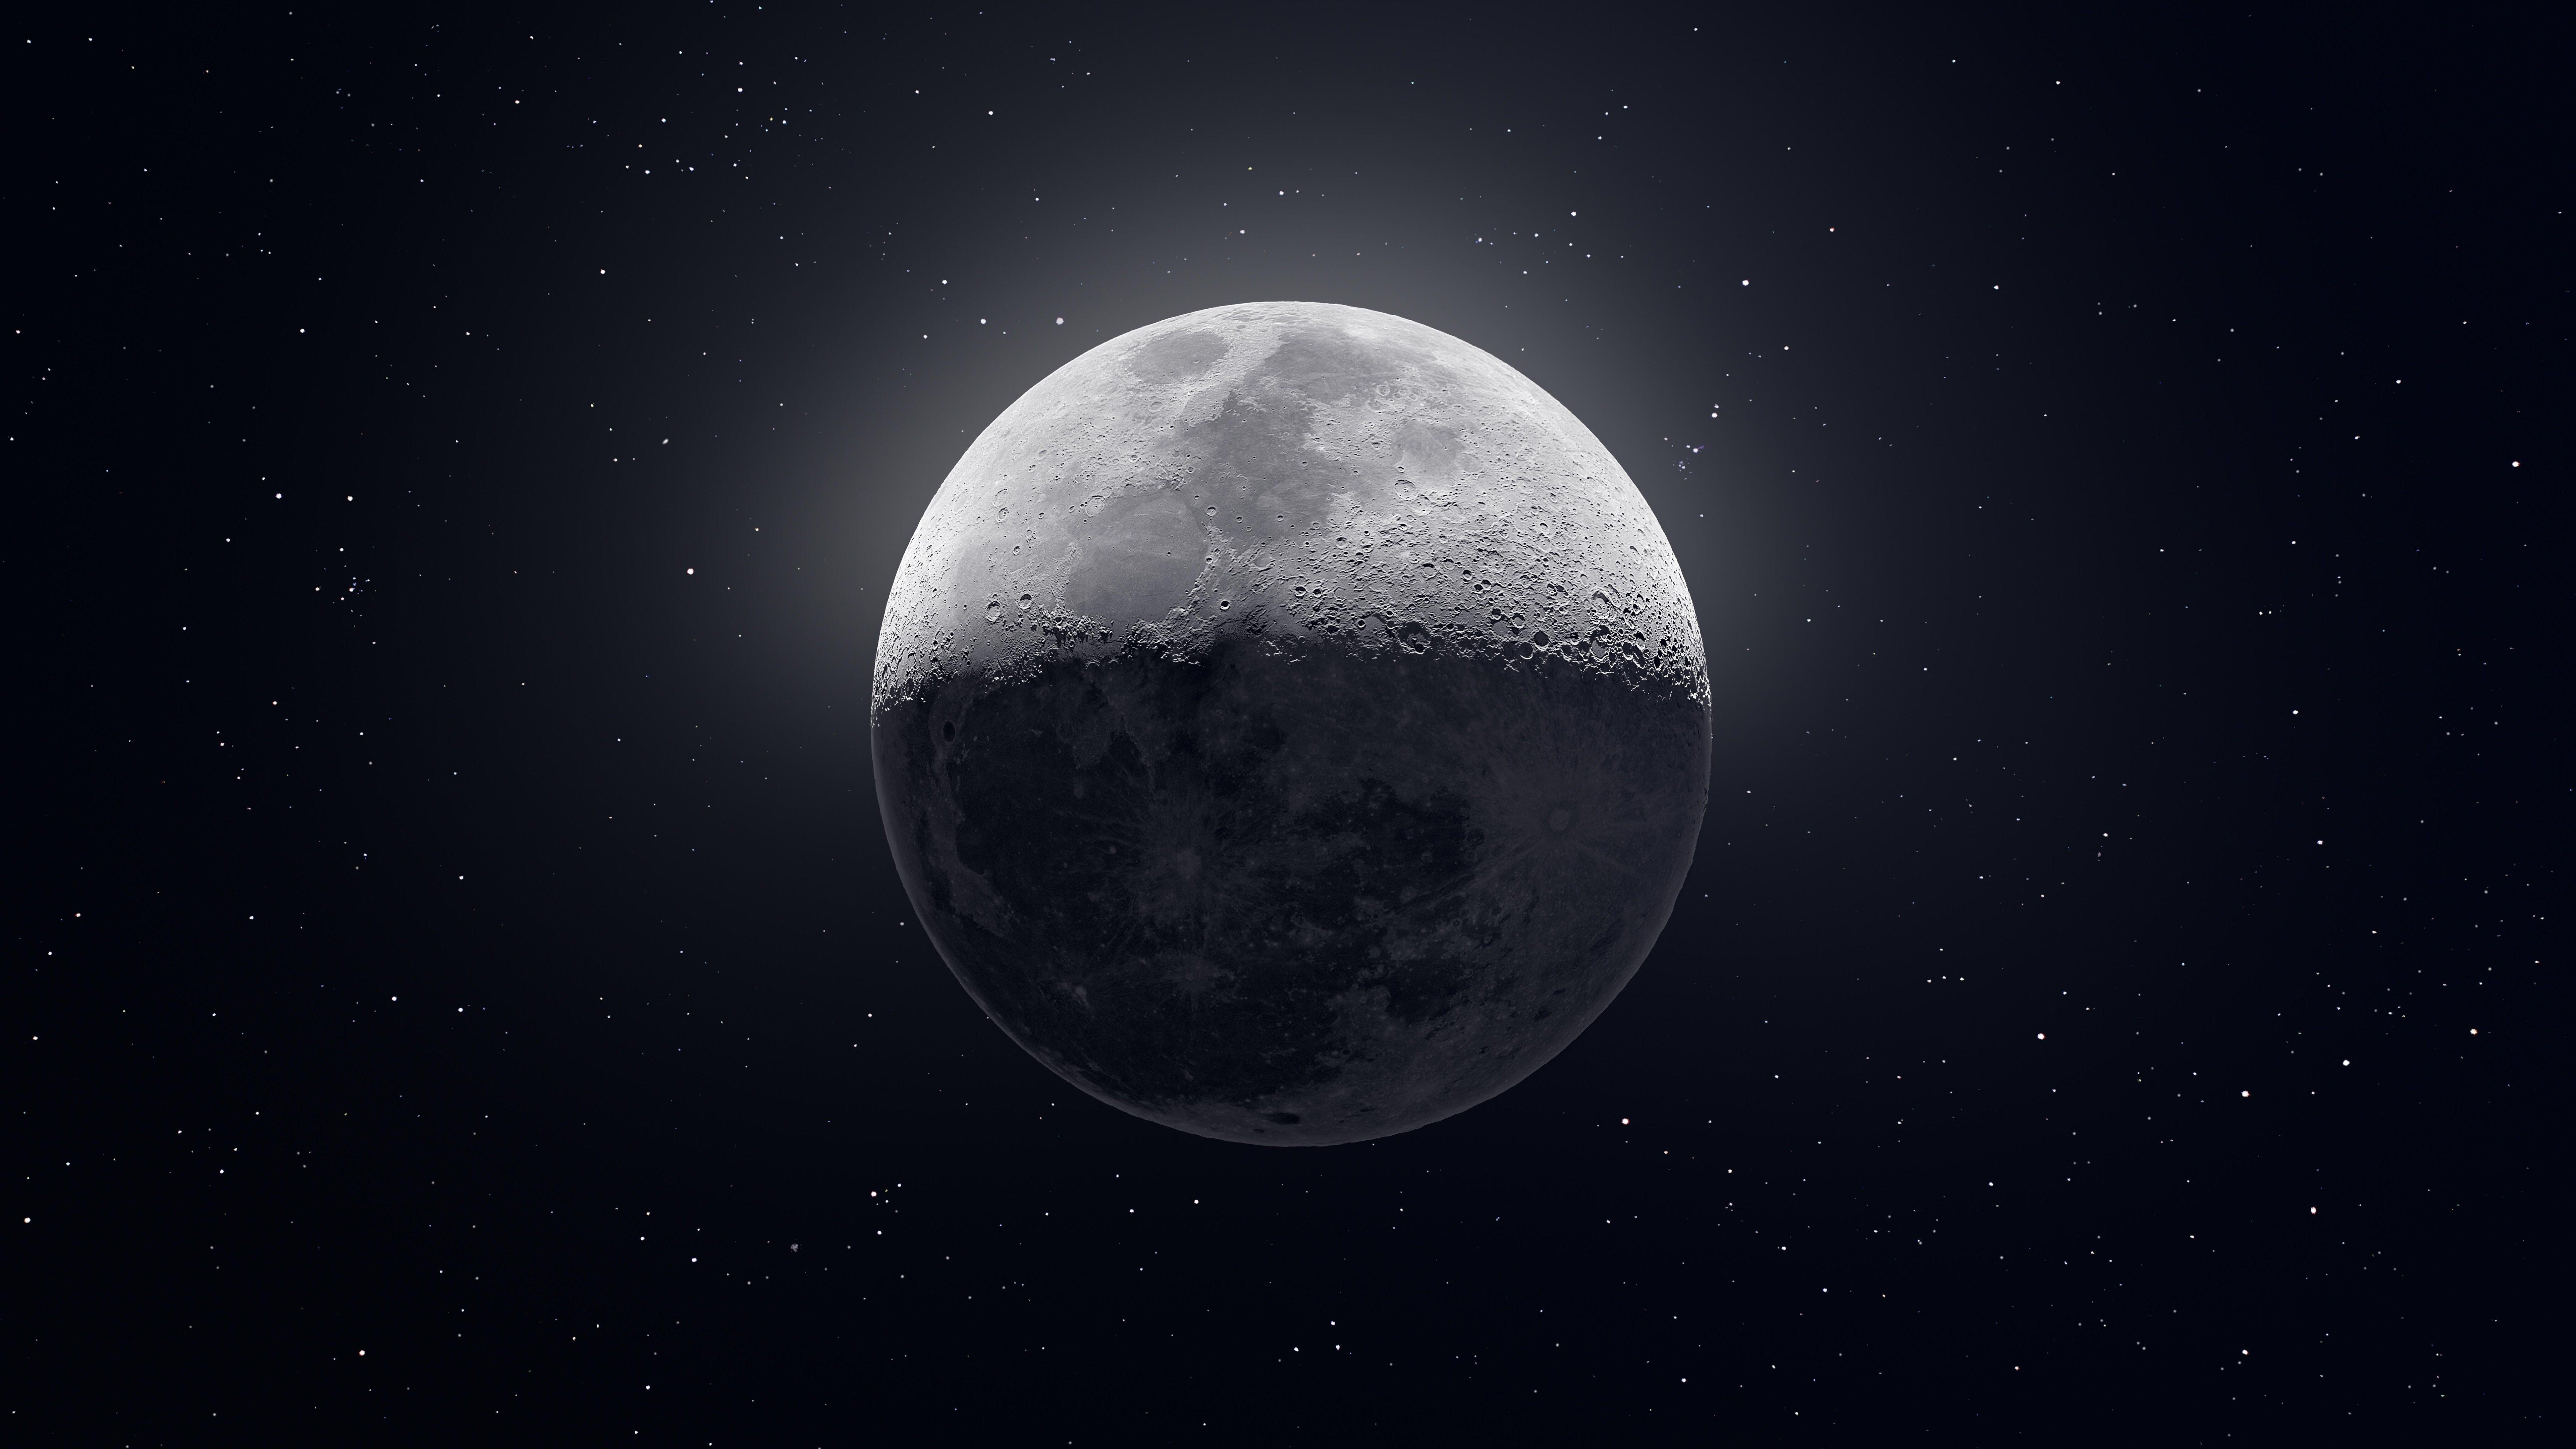 Dark Moon 8k Hd Digital Universe 4k Wallpapers Images Backgrounds Photos And Pictures